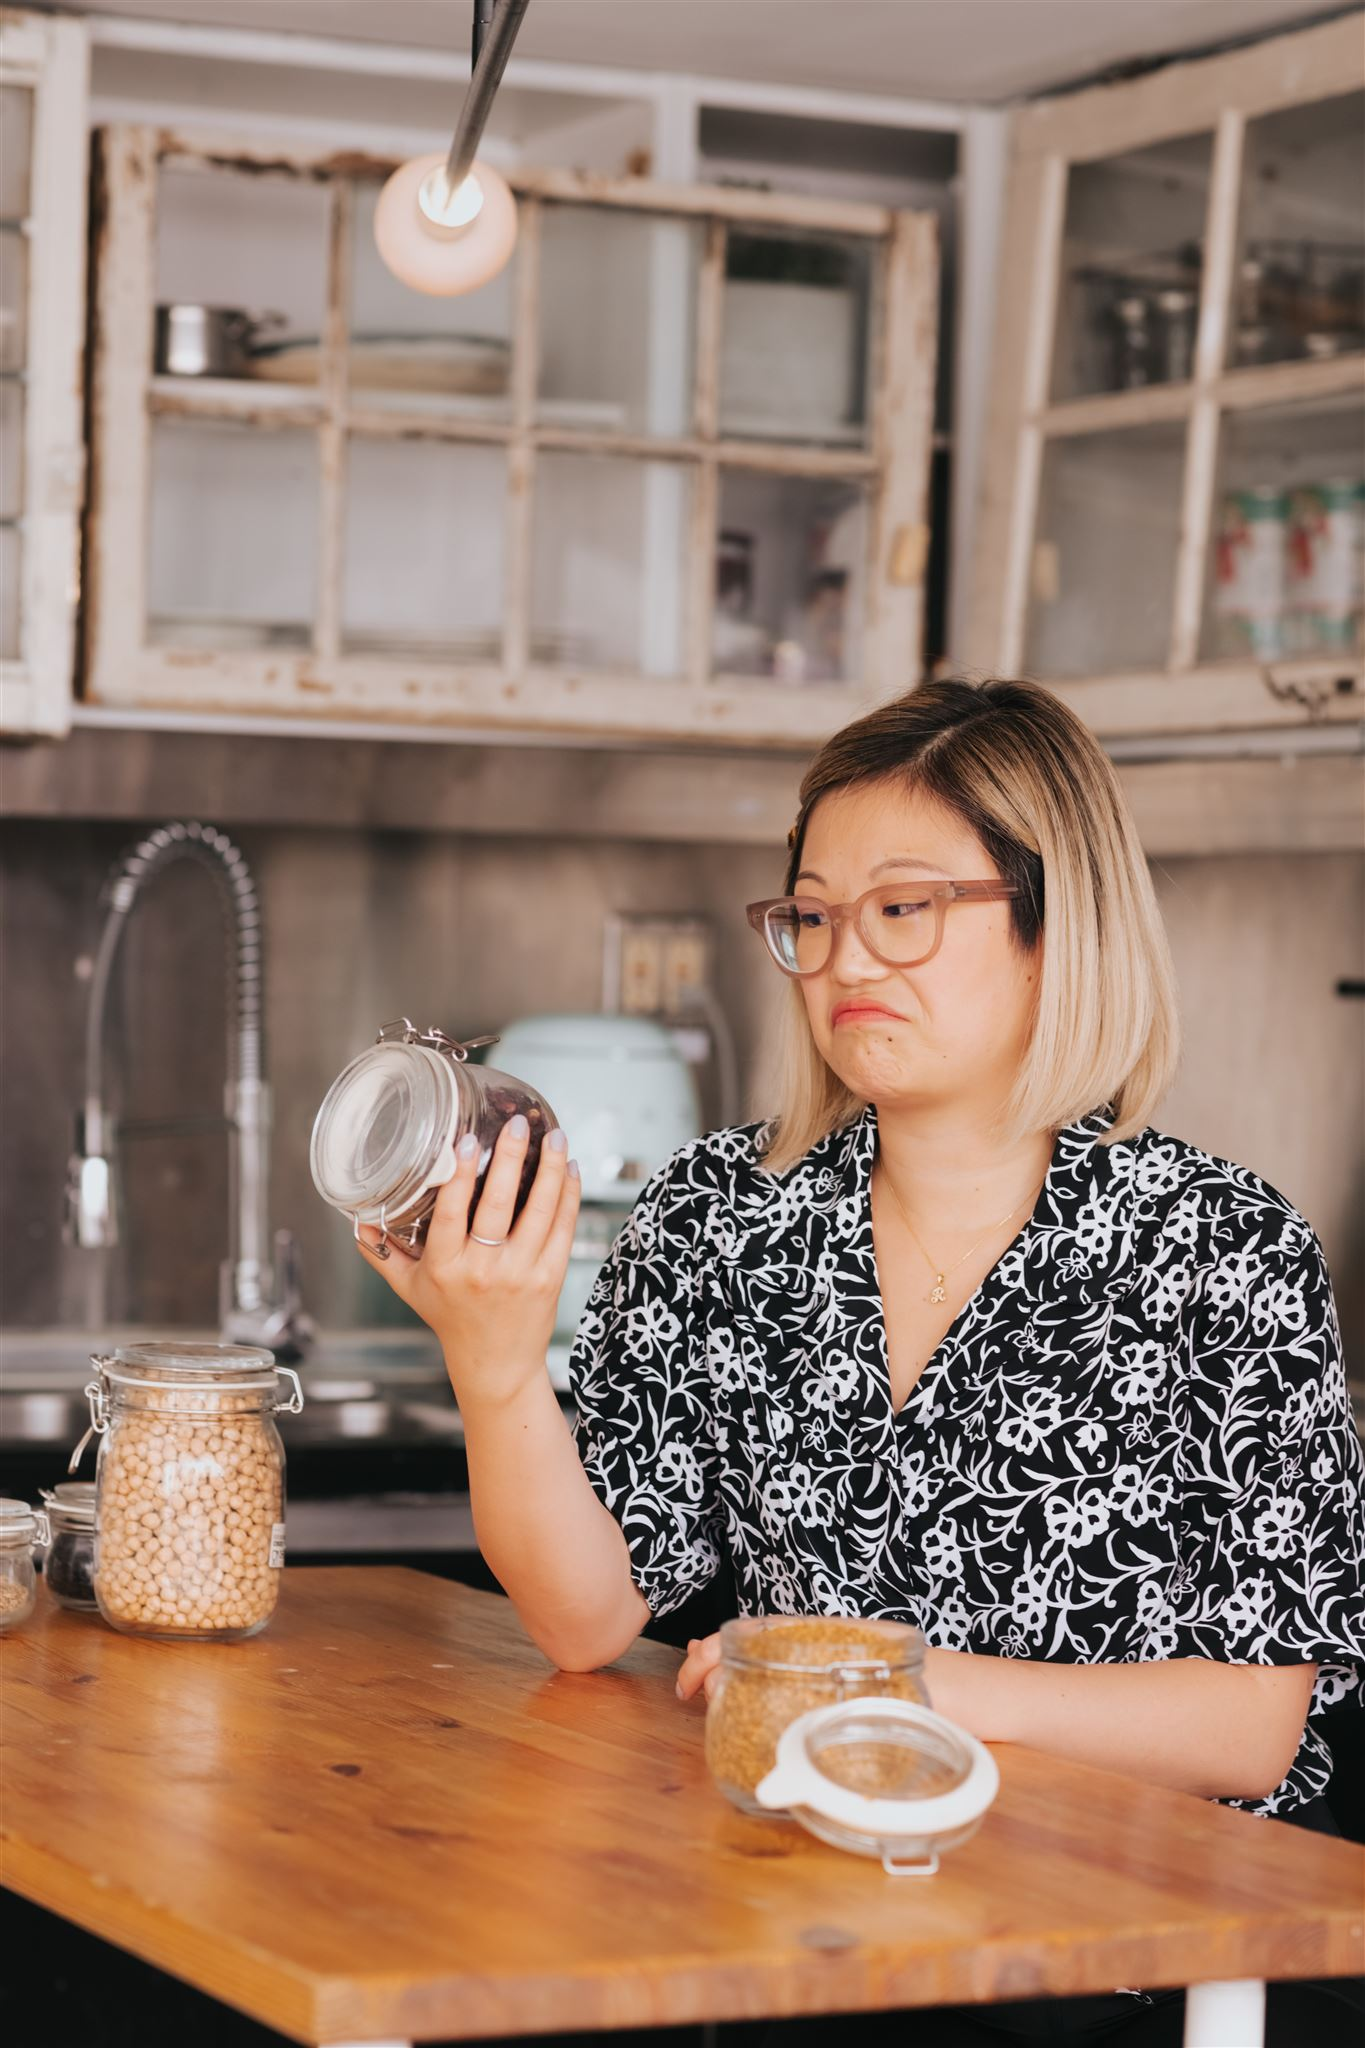 Woman sitting at a table holding up and examining a glass jar of almonds